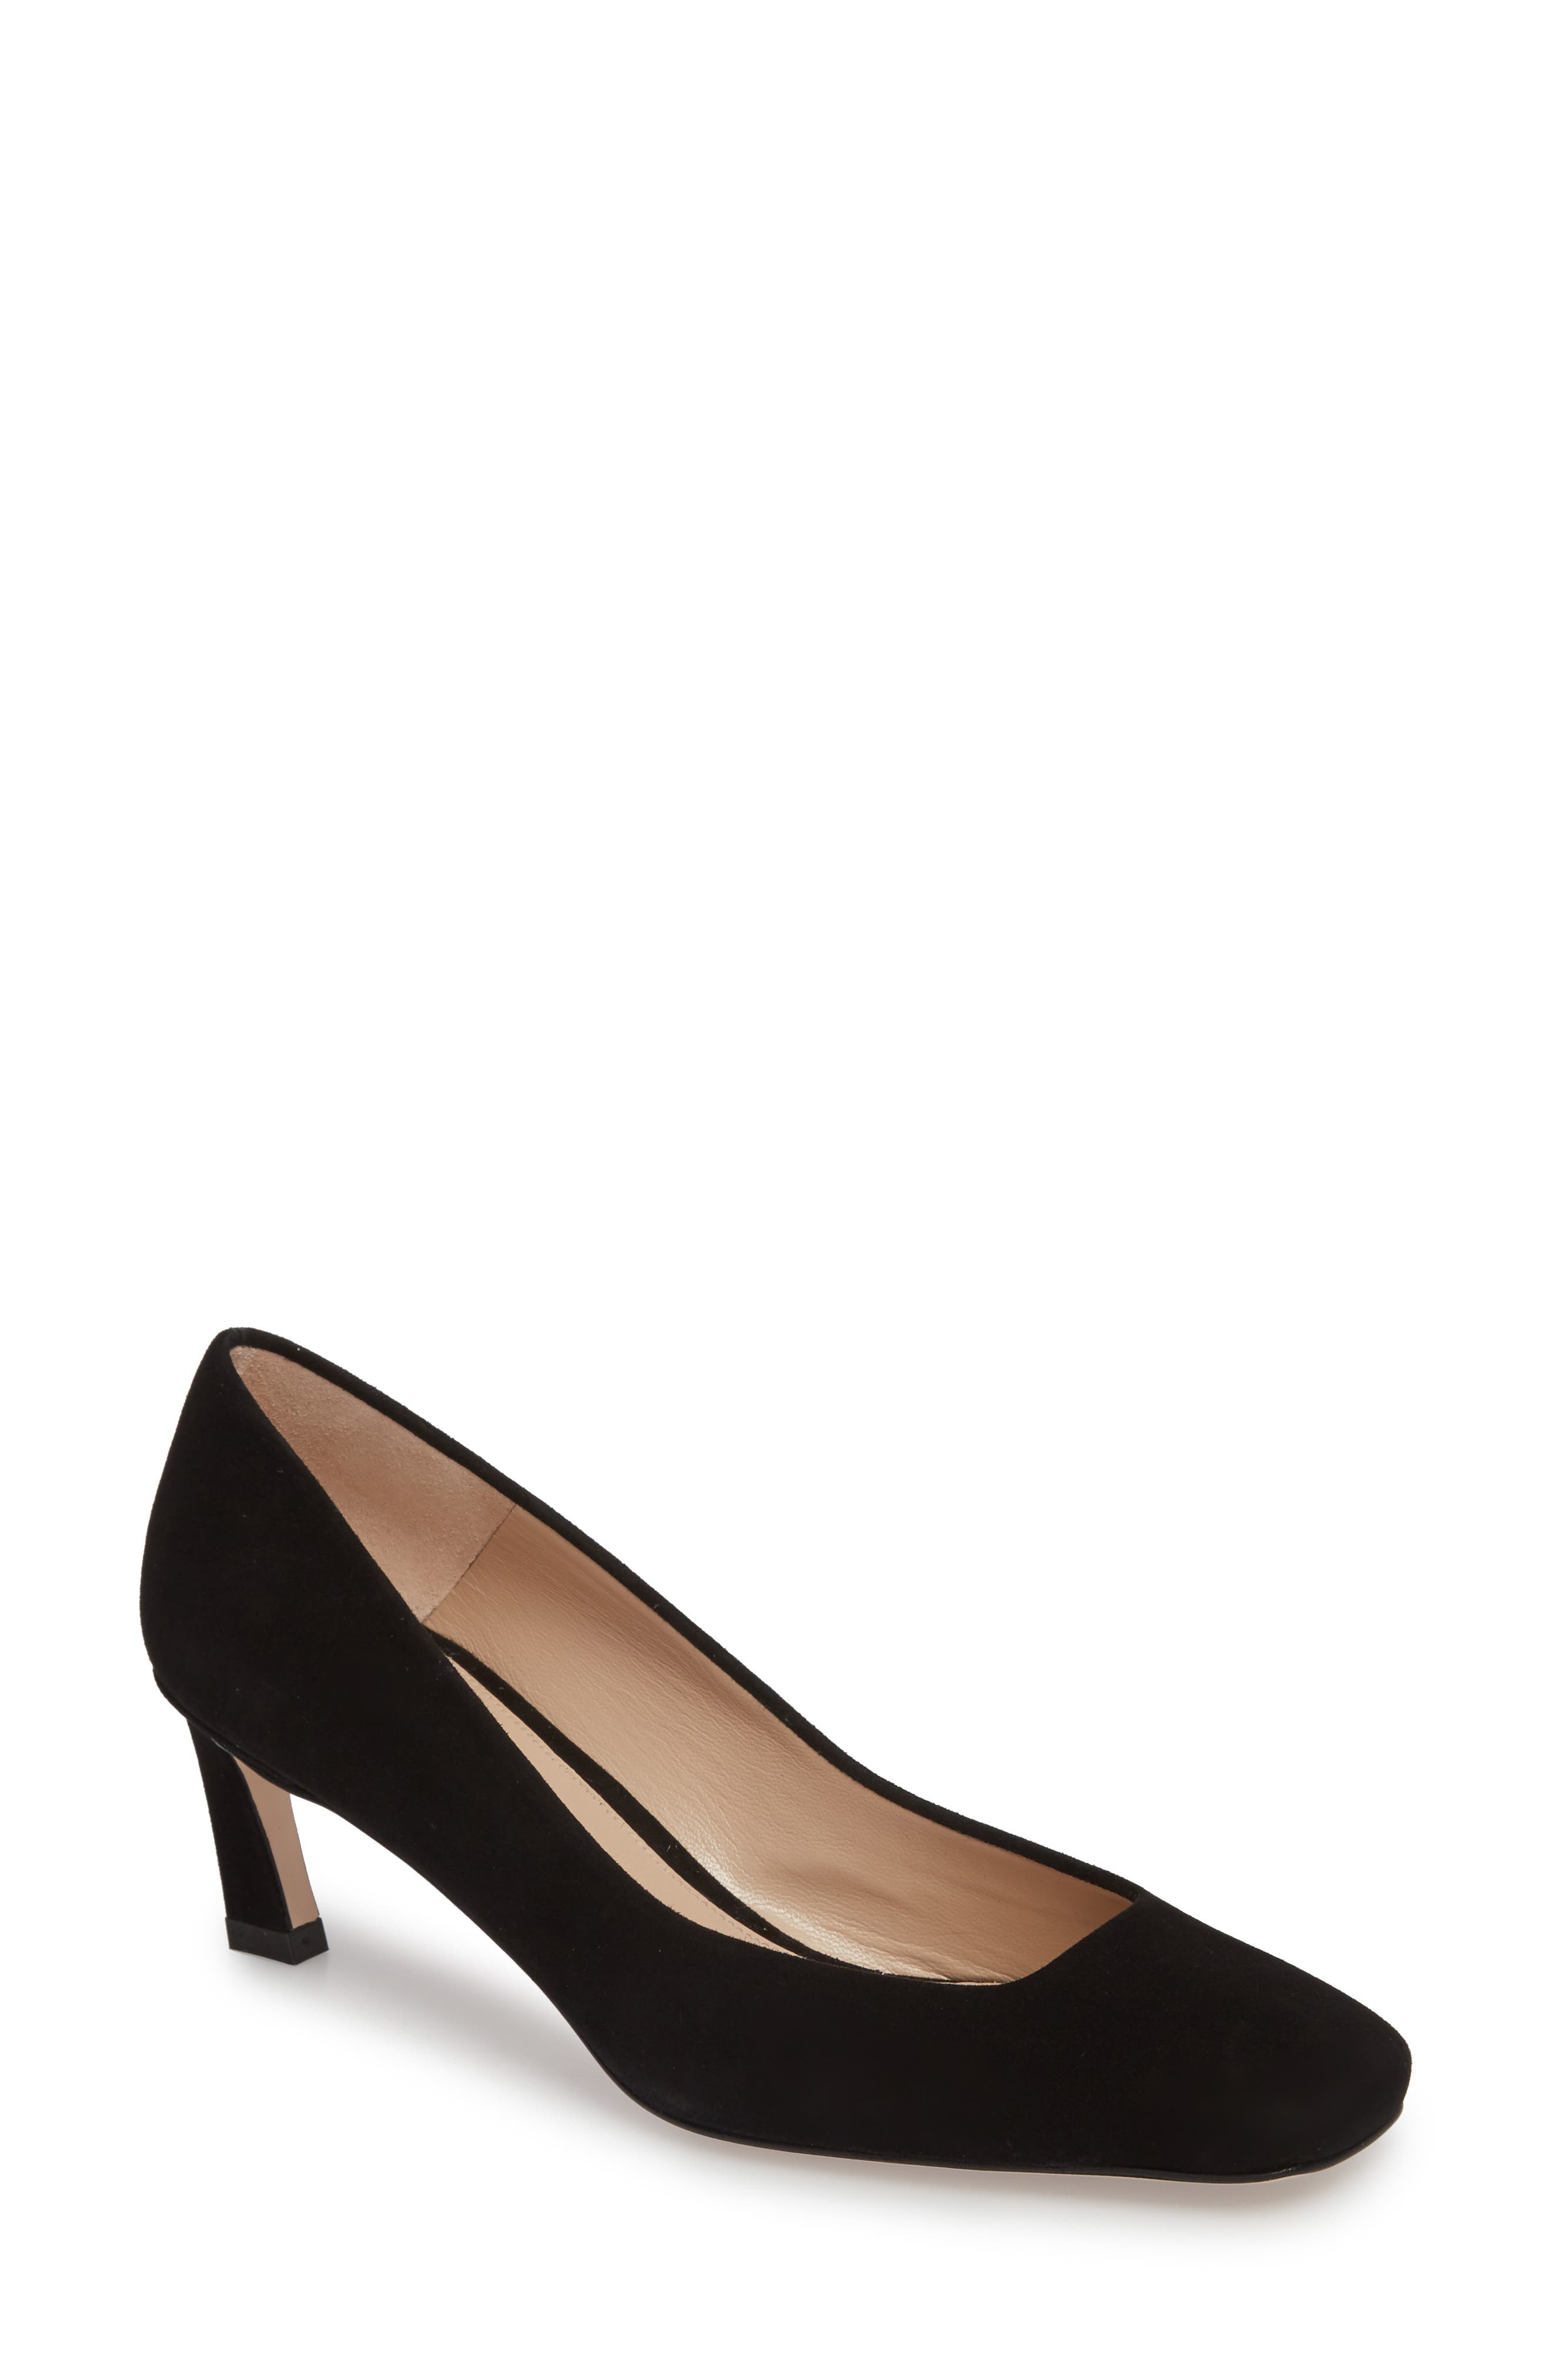 Chelsea Square Toe Pump,                         Main,                         color, 006